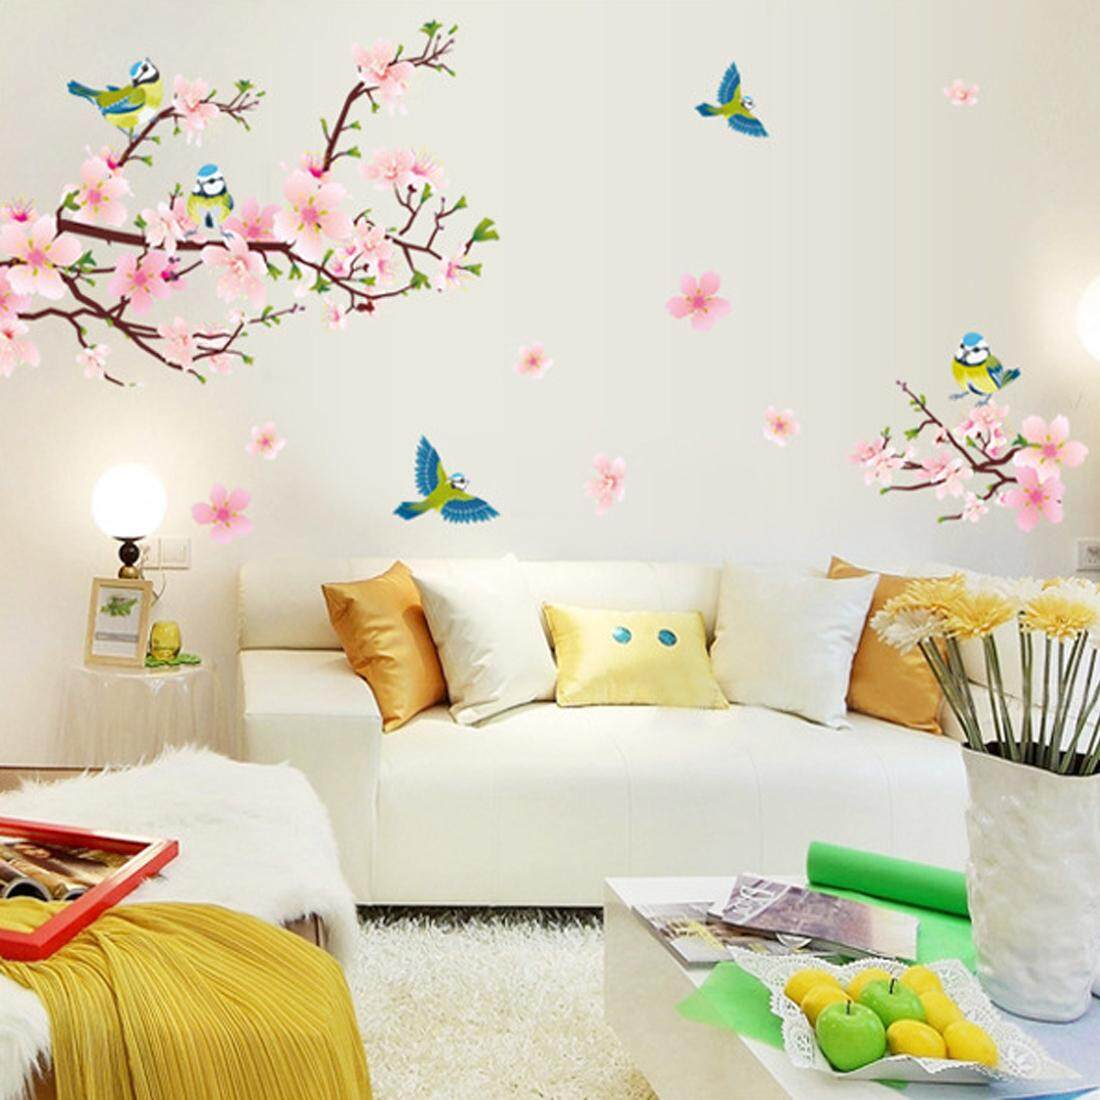 Pink Peach Flower Birds PVC Wall Decals DIY Home Sticker WallPaper Vinyl Wall arts Pictures Removable Murals For House Decoration Baby Living Rooms Bedroom Toilet